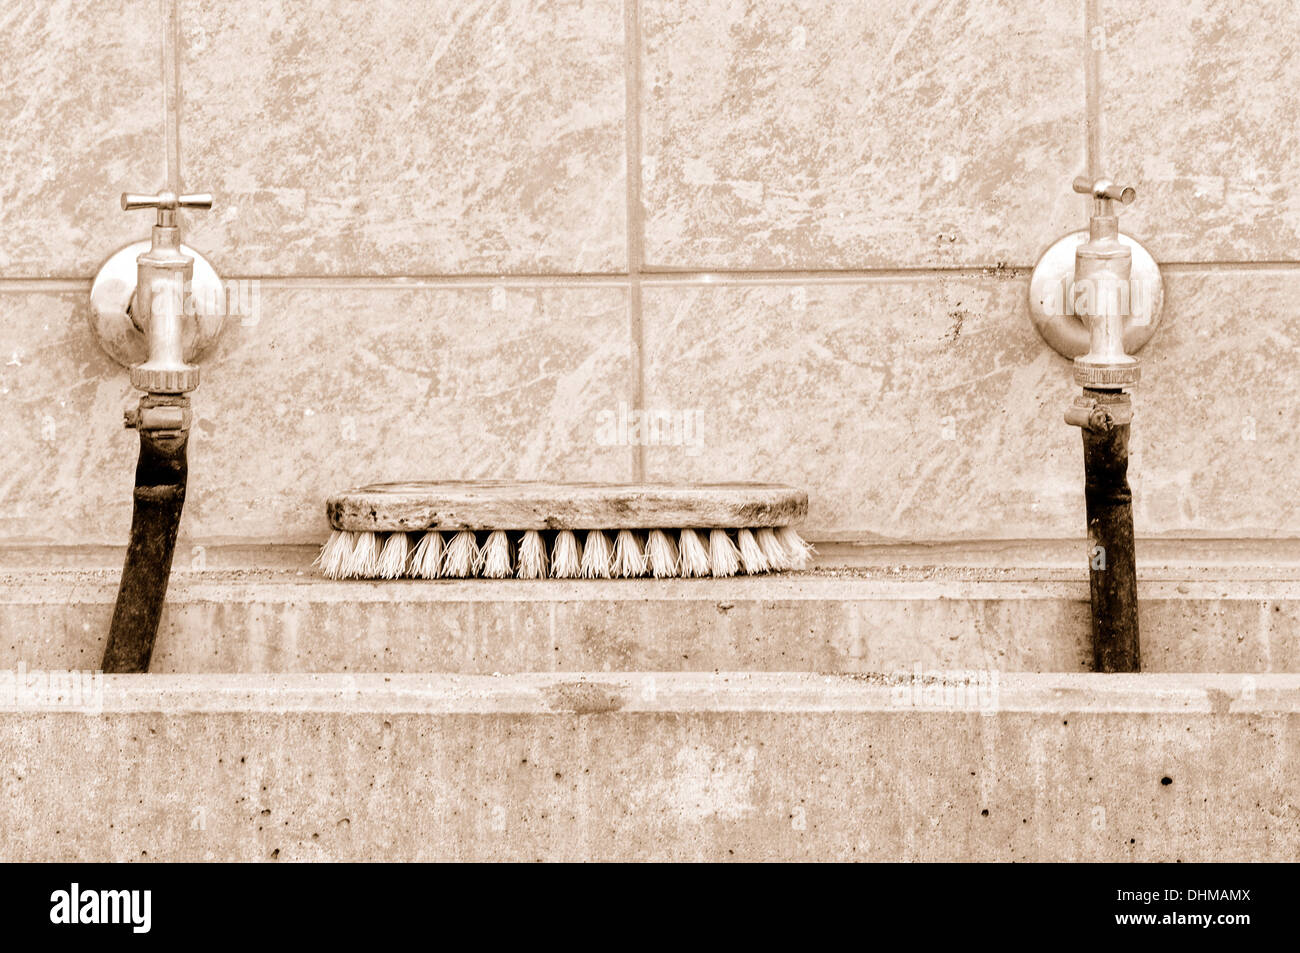 betontrog stock photos & betontrog stock images - alamy